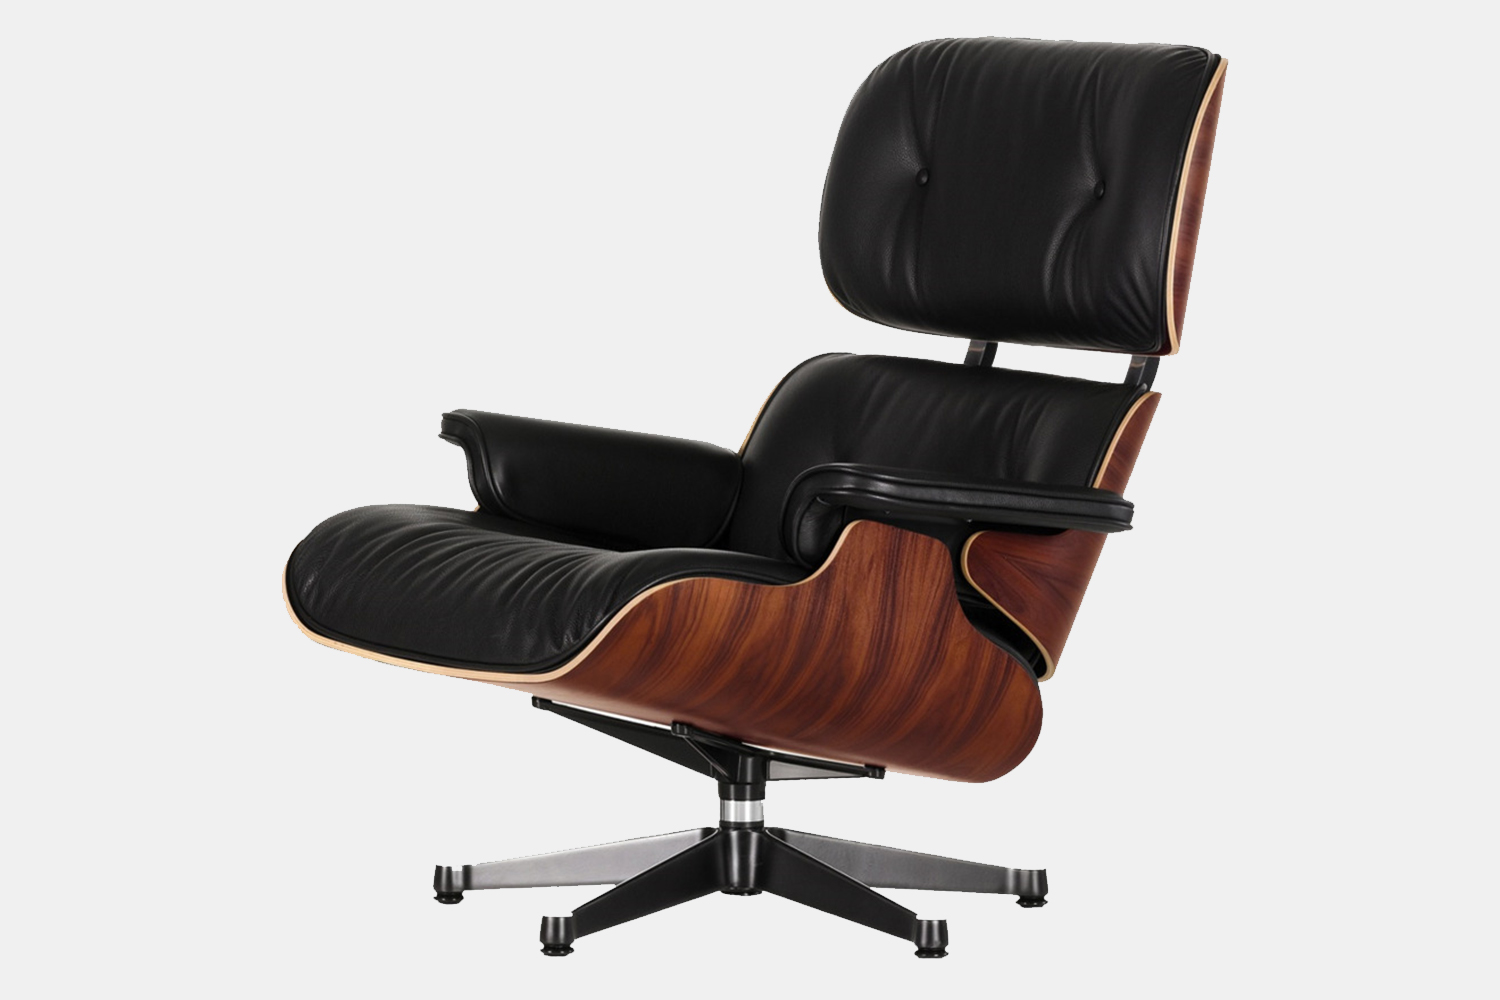 Eames Lounge Chair and Ottoman in leather